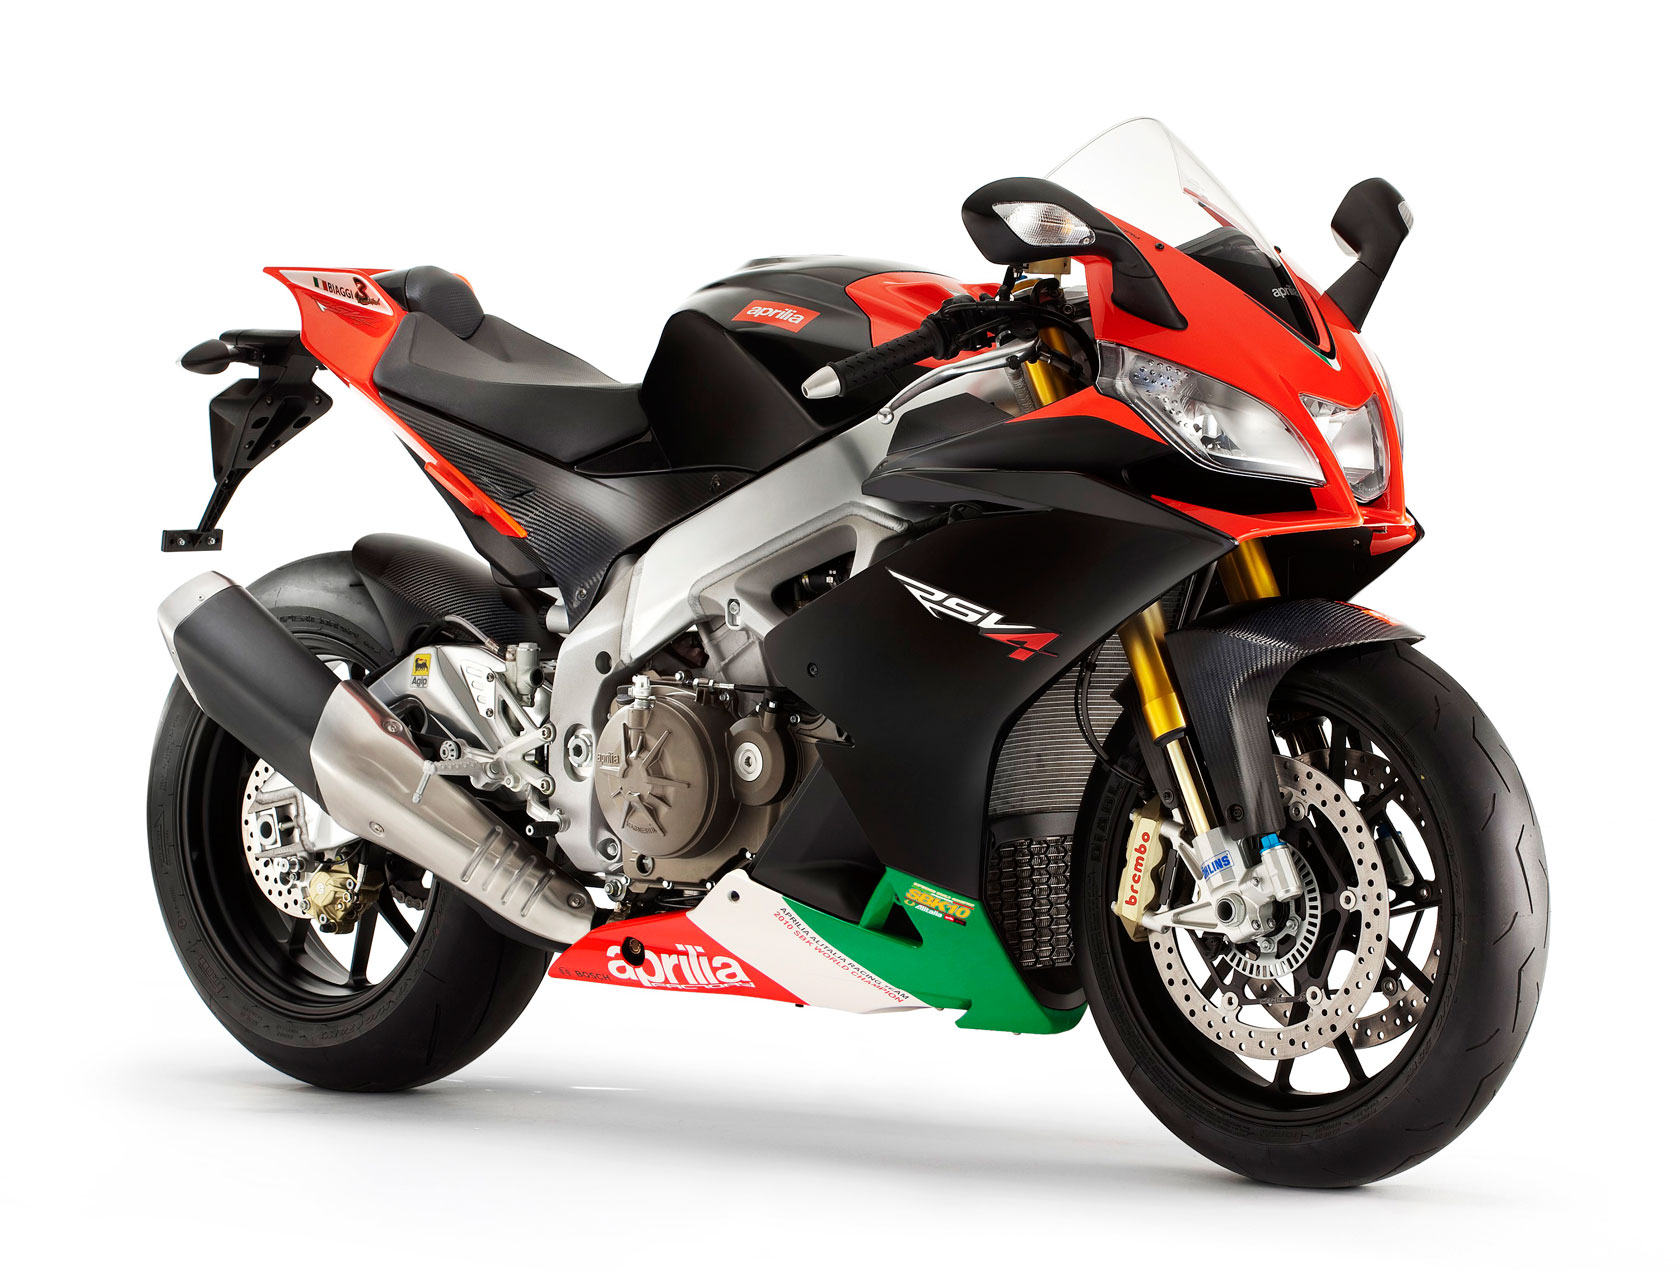 2011 aprilia rsv4 factory aprc se motorcycle model review features and specifications. Black Bedroom Furniture Sets. Home Design Ideas